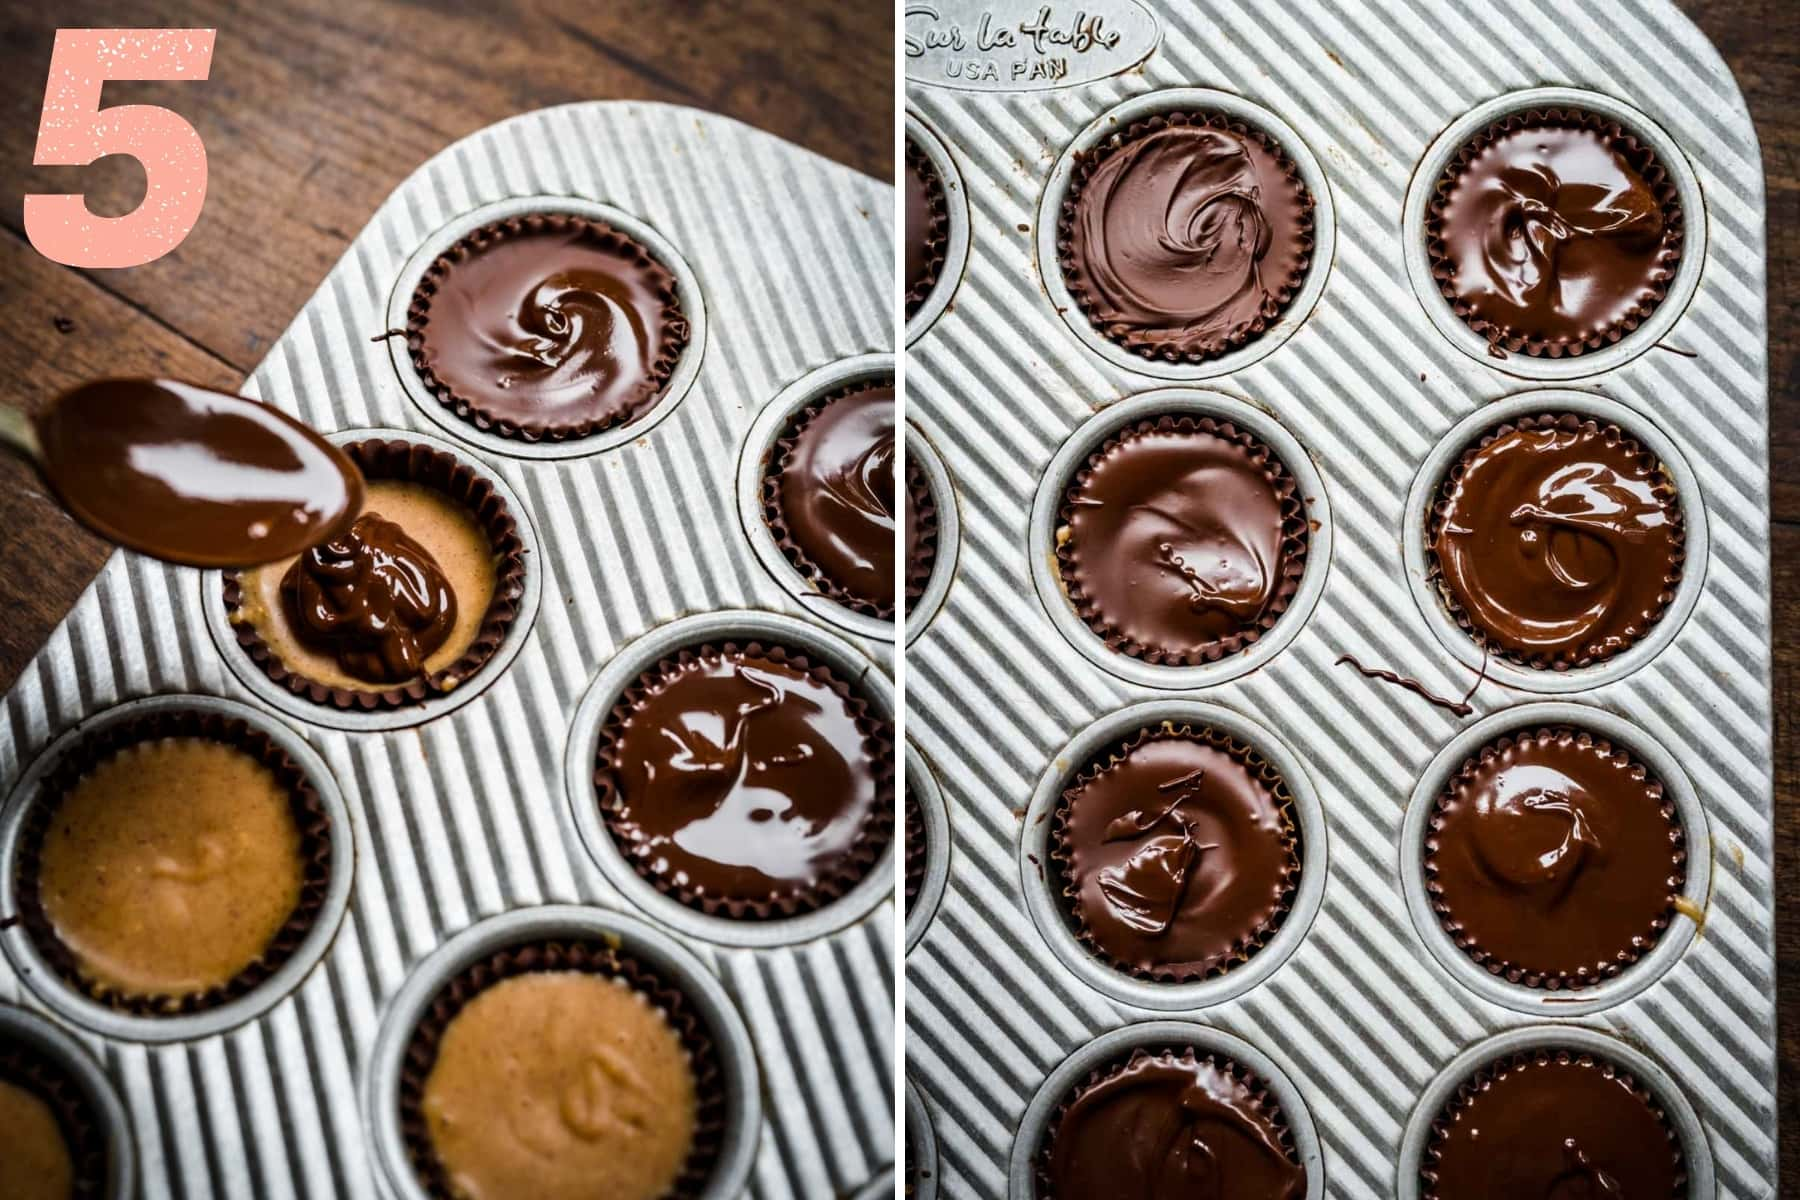 spooning a layer of melted chocolate on top of peanut butter filling to make peanut butter cups in mini muffin tin.